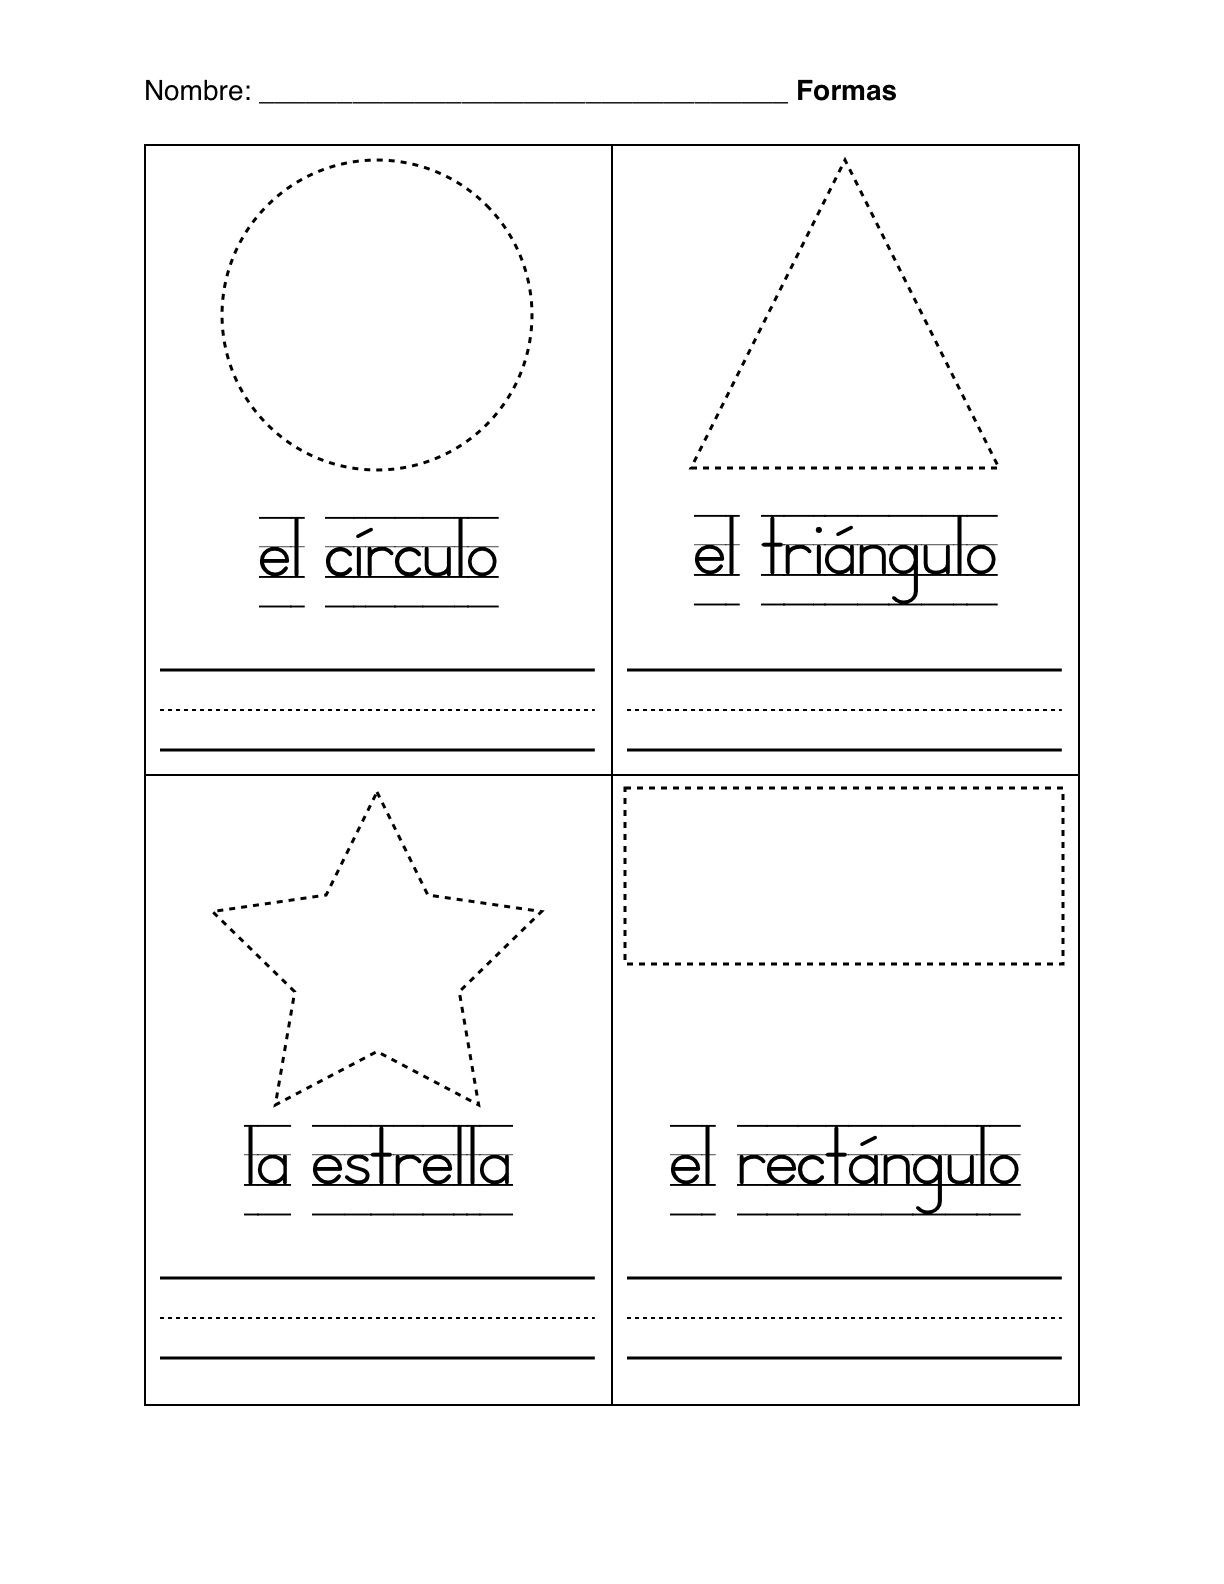 Worksheets Basic Shapes Worksheets spanish worksheets for kindergarten basic shapes in formas basicas worksheet